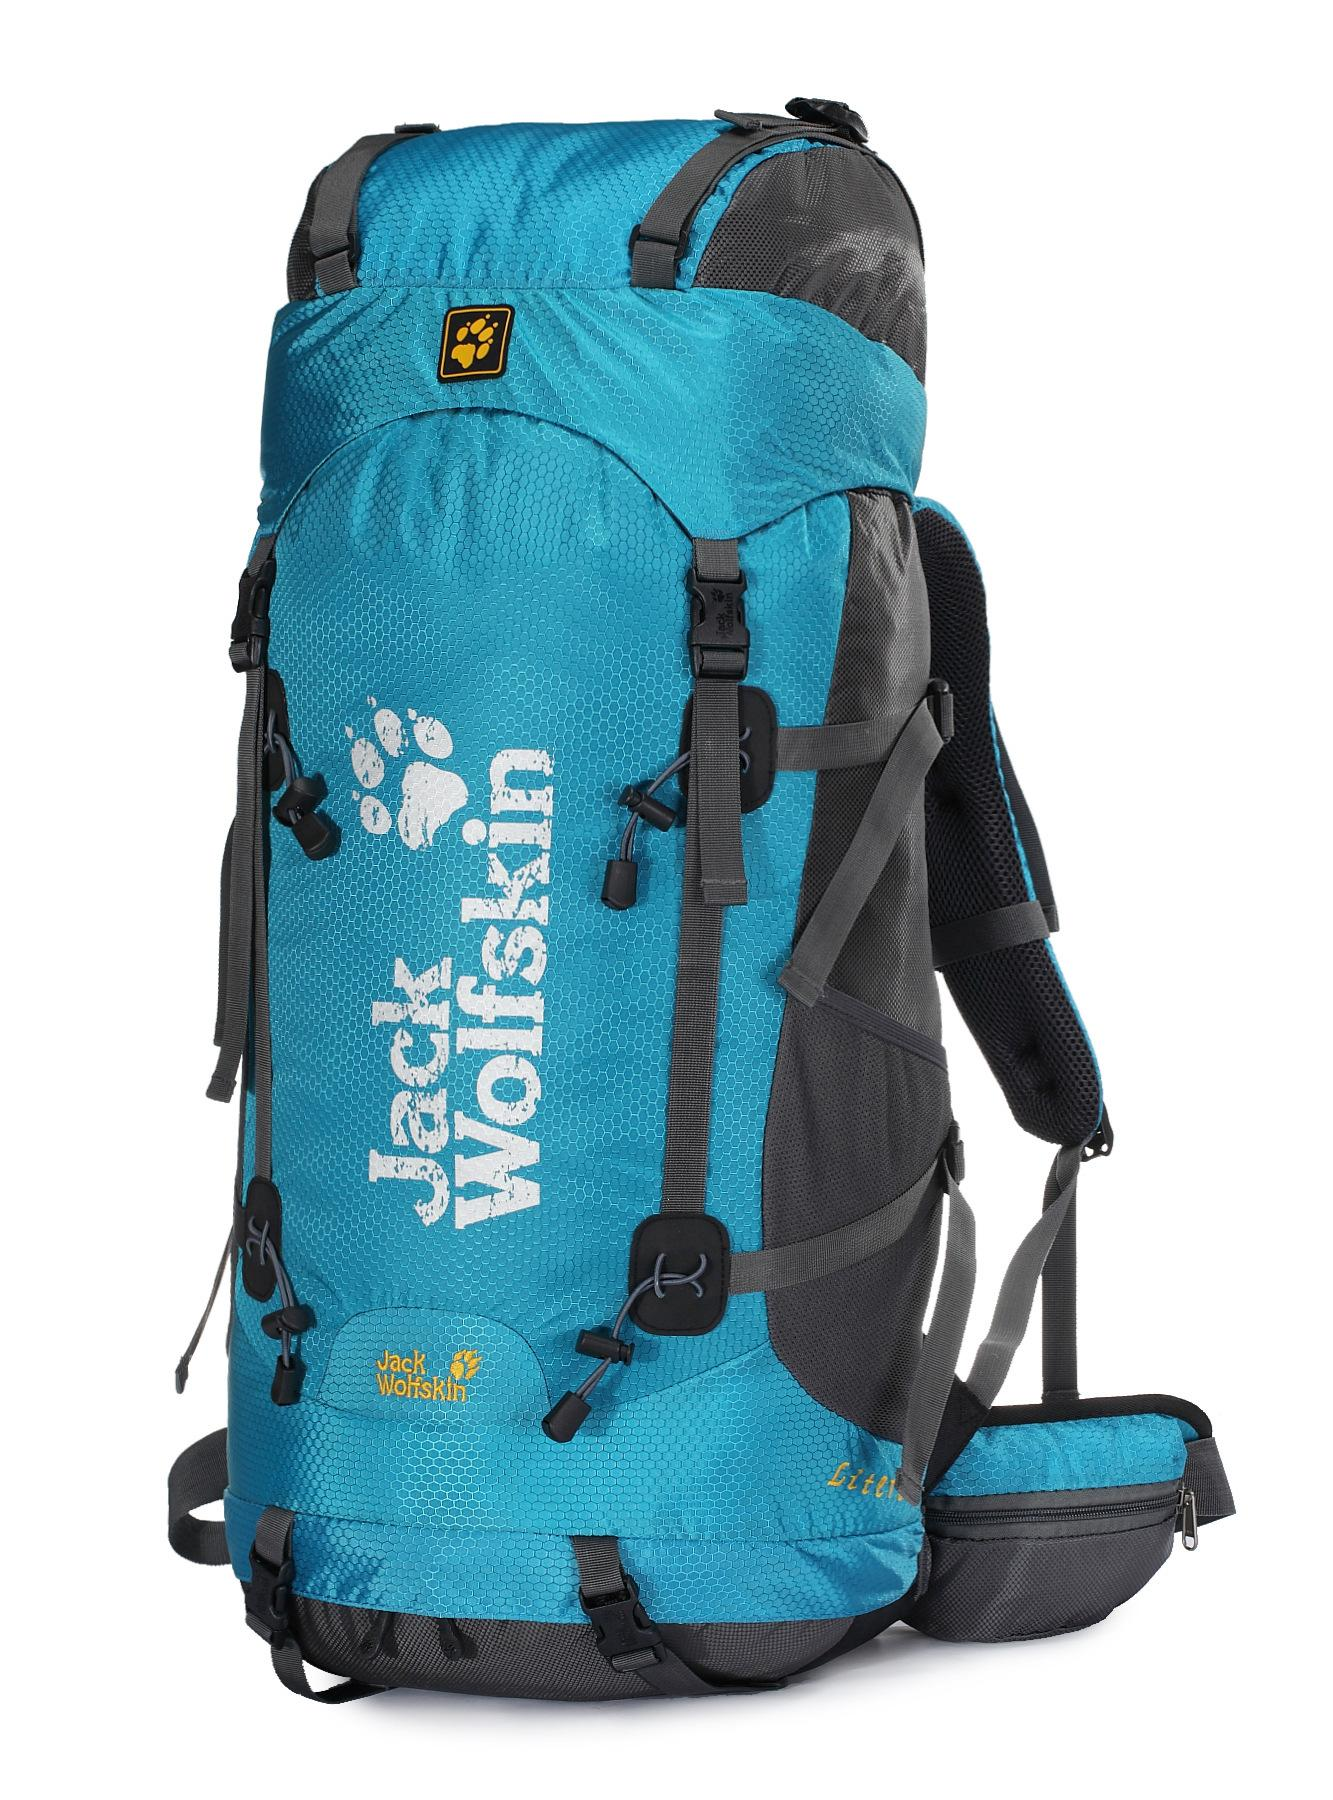 Discount Hiking Backpacks gfW4PzSc